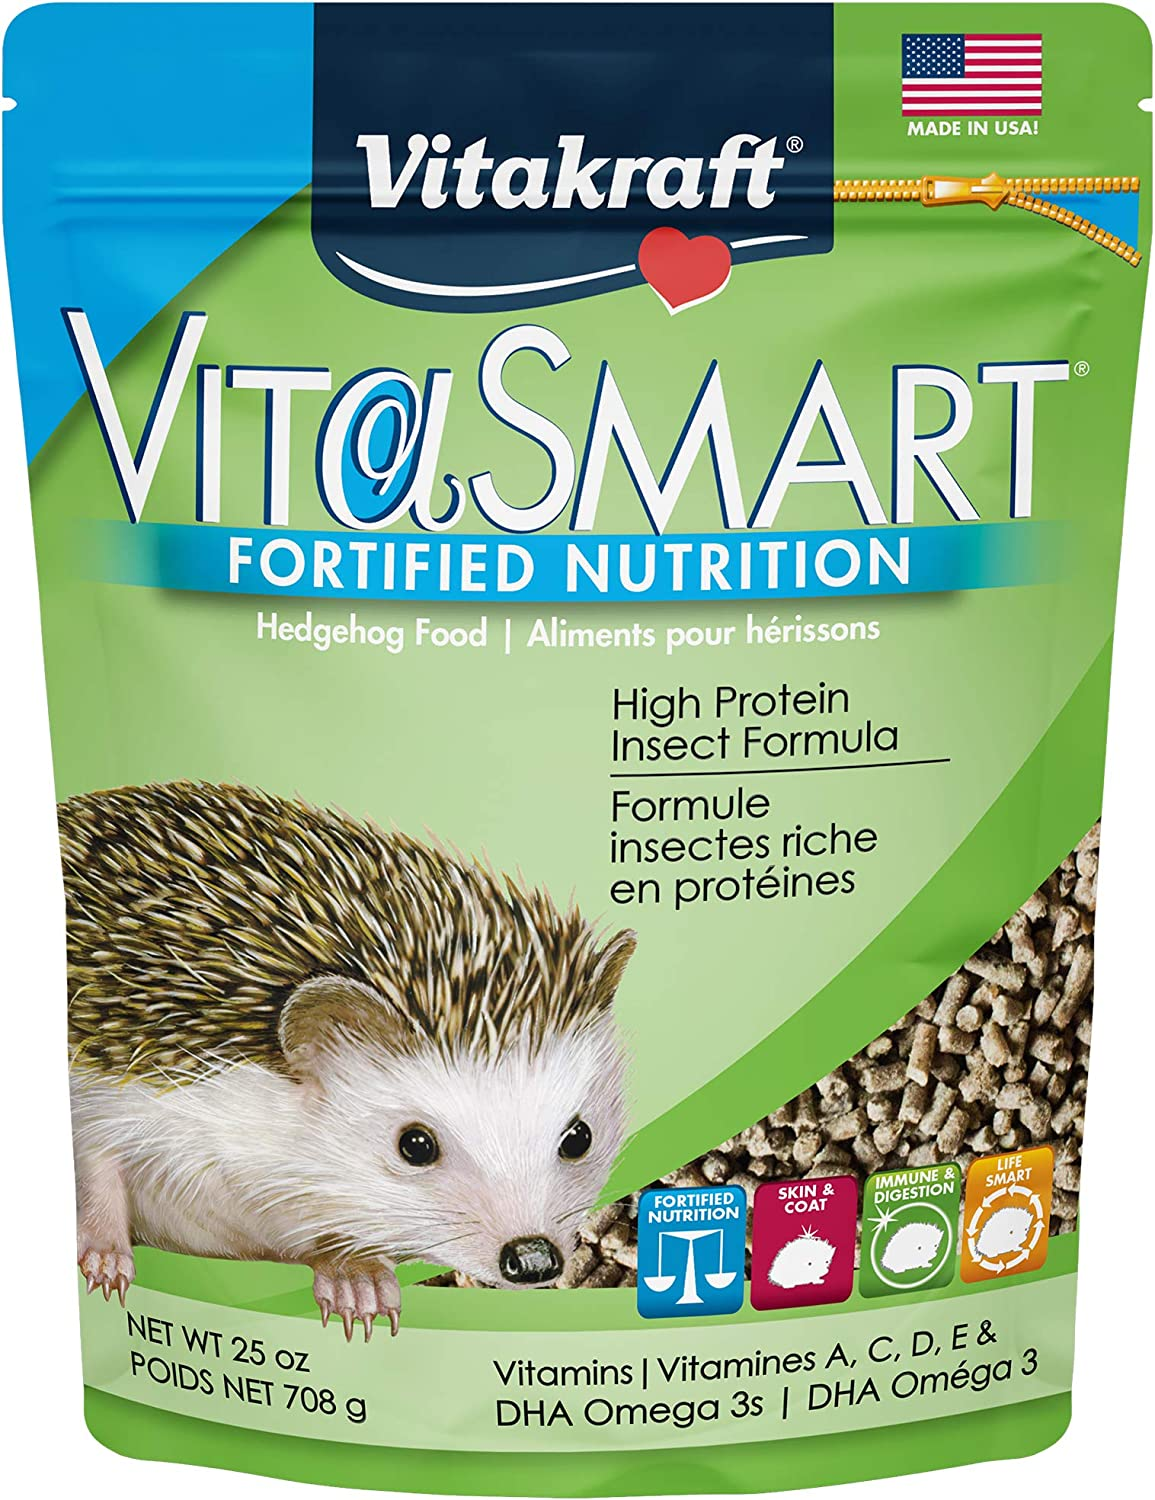 Vitakraft VitaSmart Fortified Nutrition Hedgehog Food, 25 oz